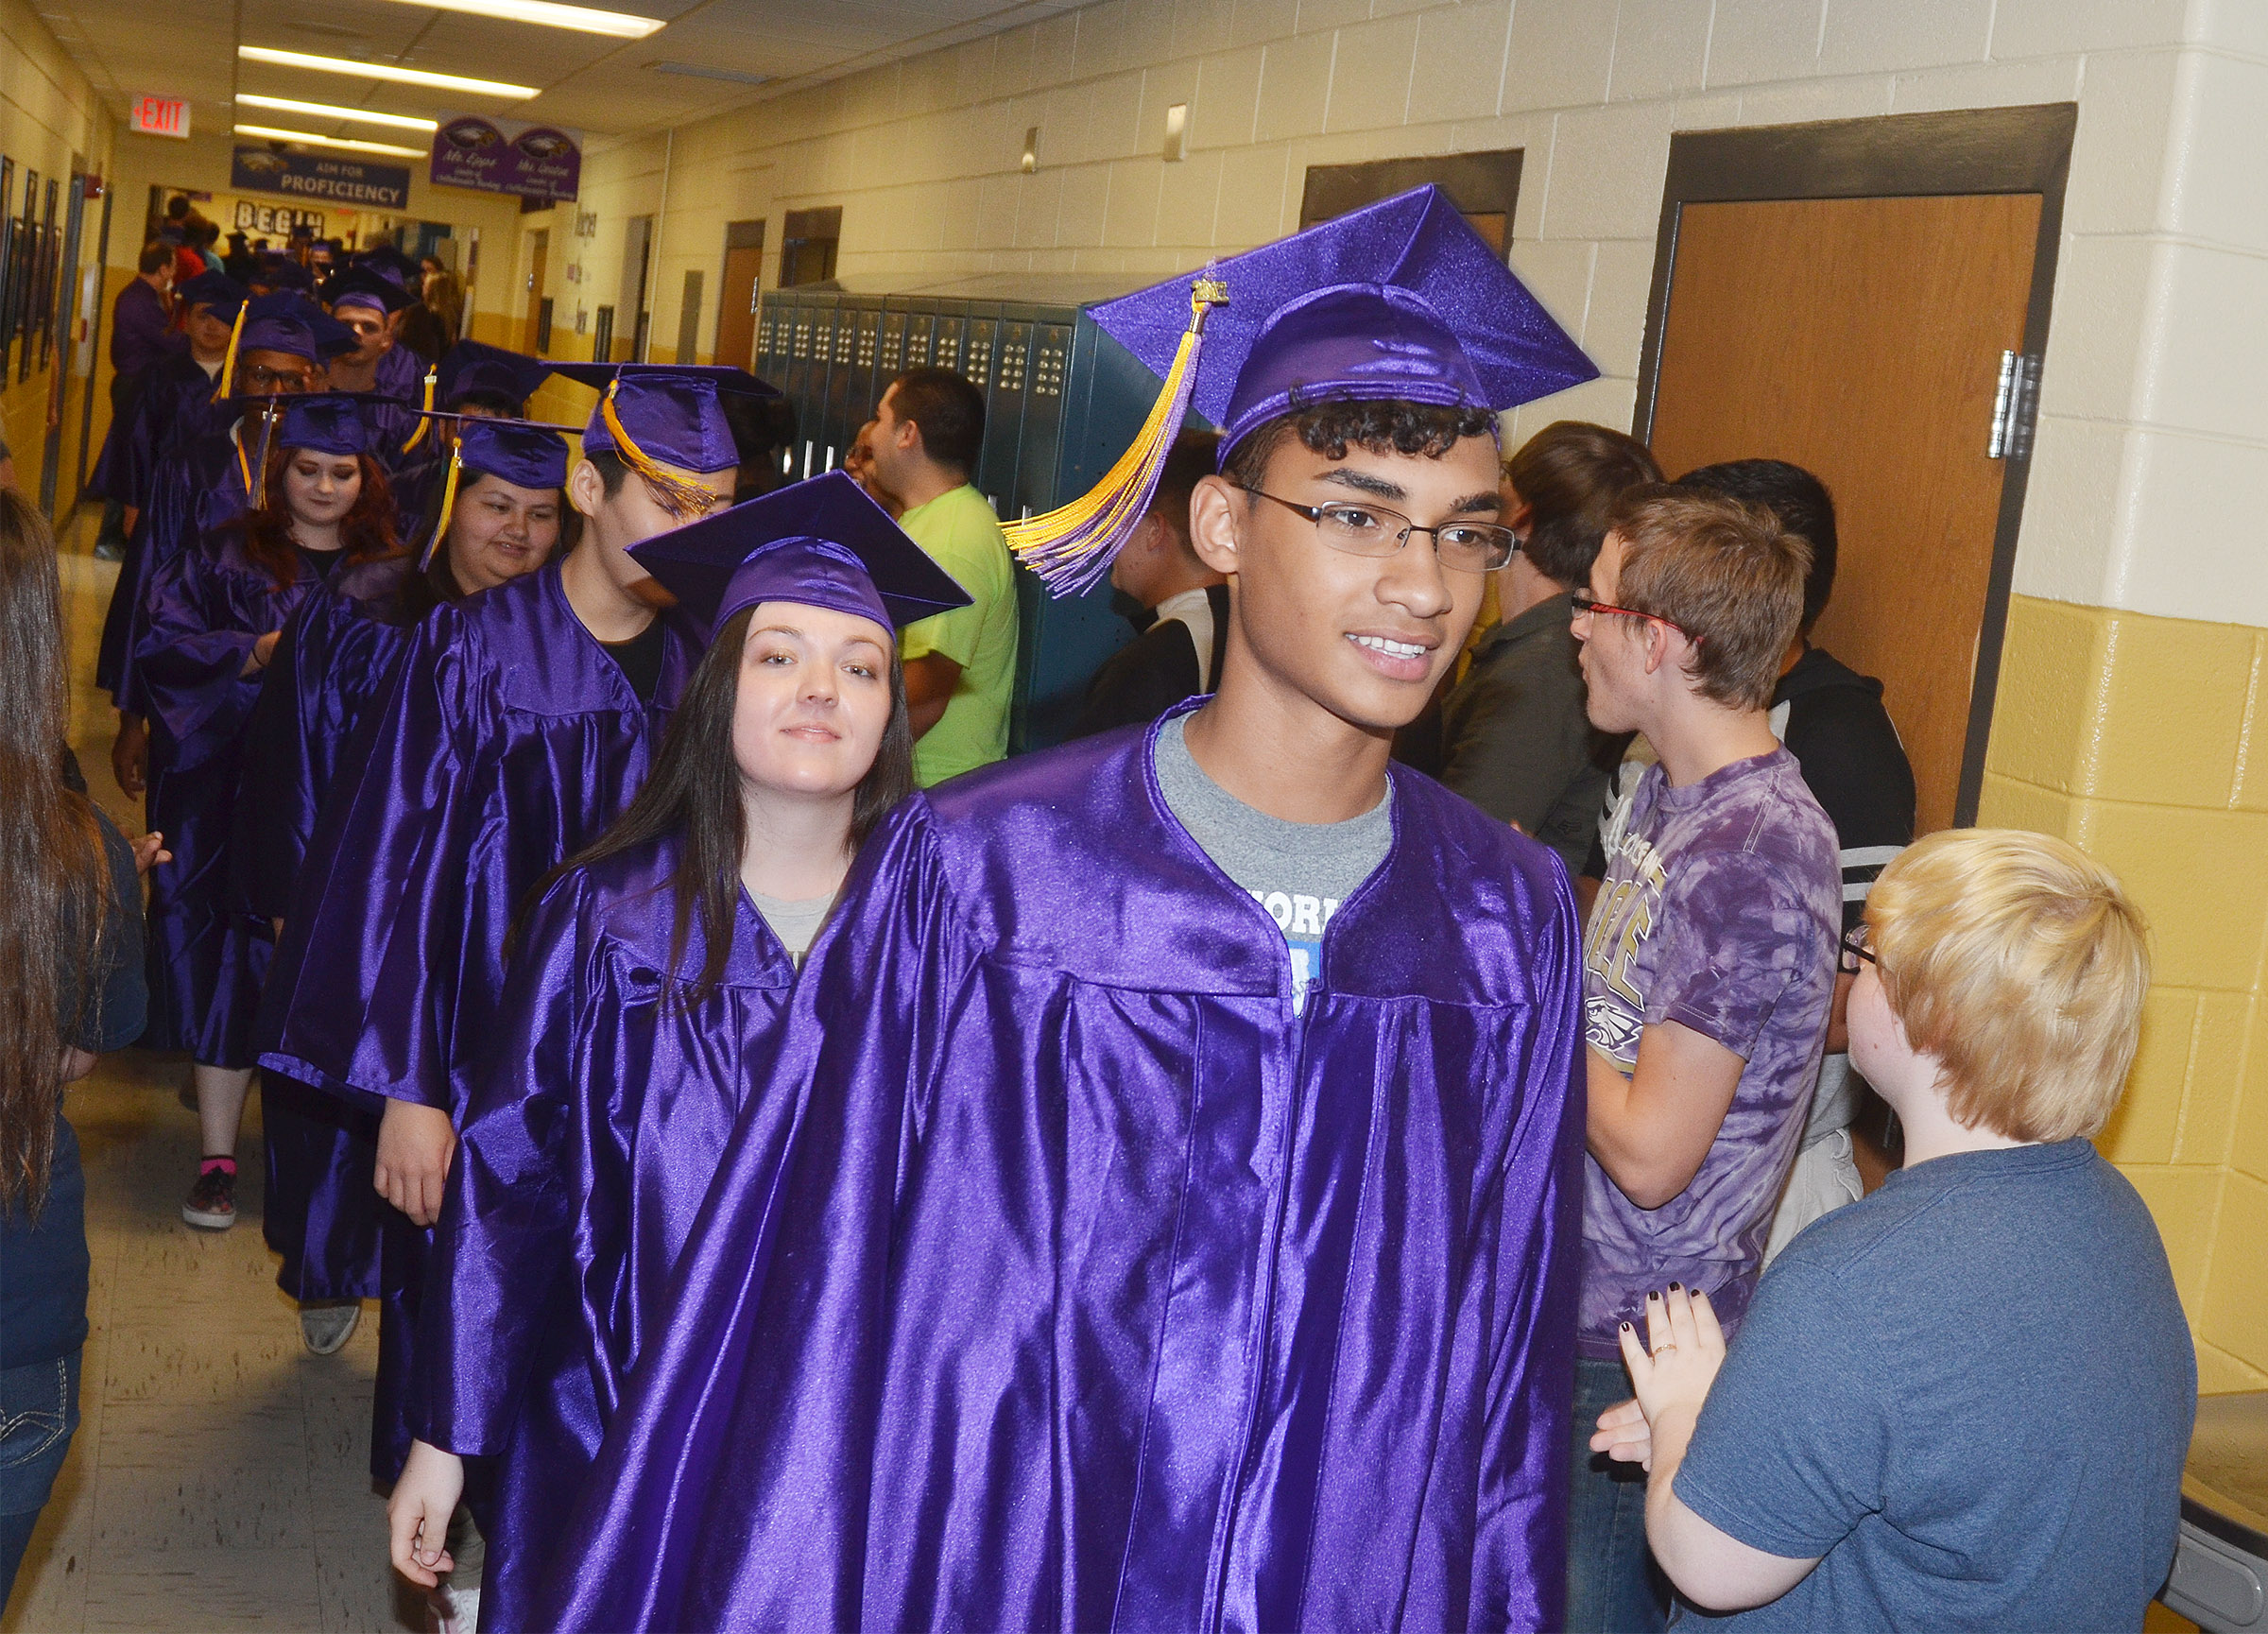 CHS senior Daniel Silva and his classmates walk down the hallways at CHS.